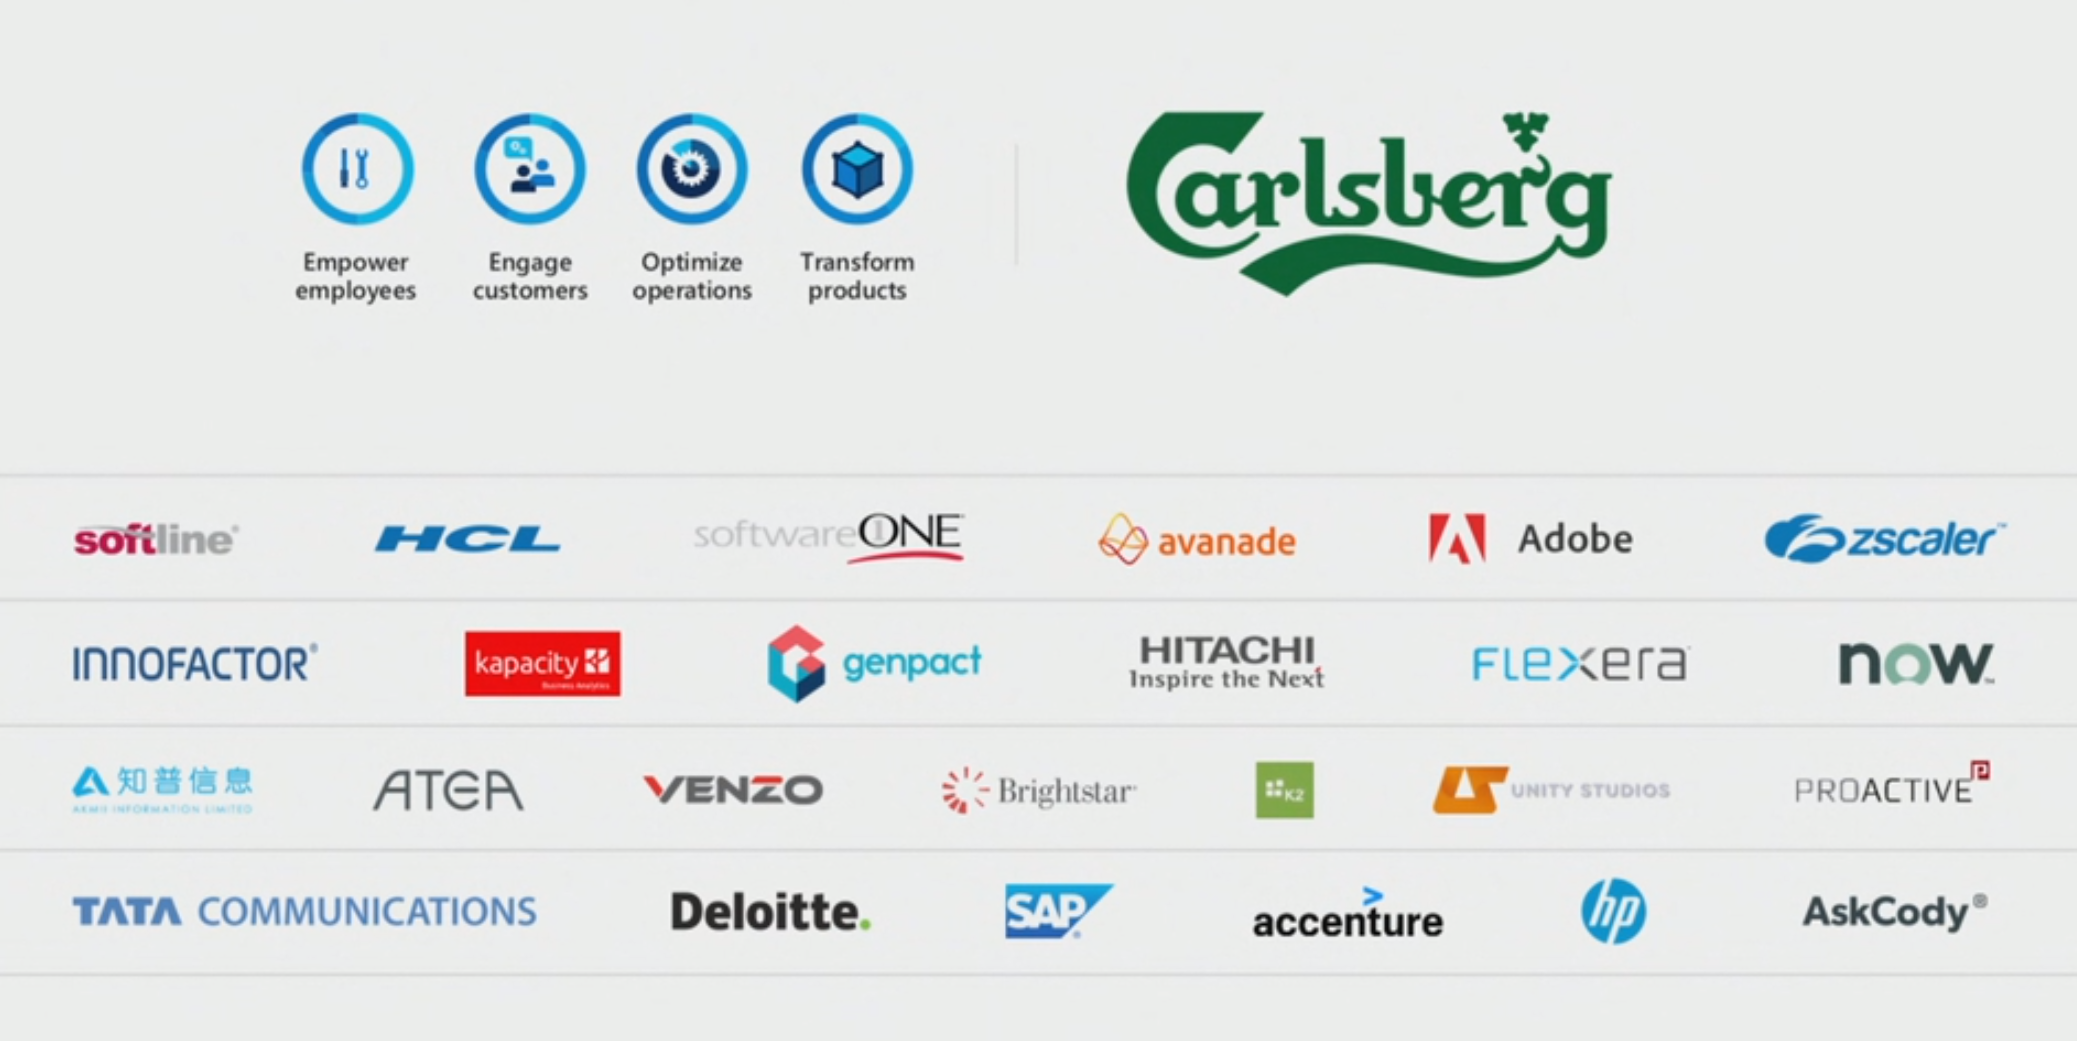 carlsberg-shouts-out-askcody-at-microsoft-inspire